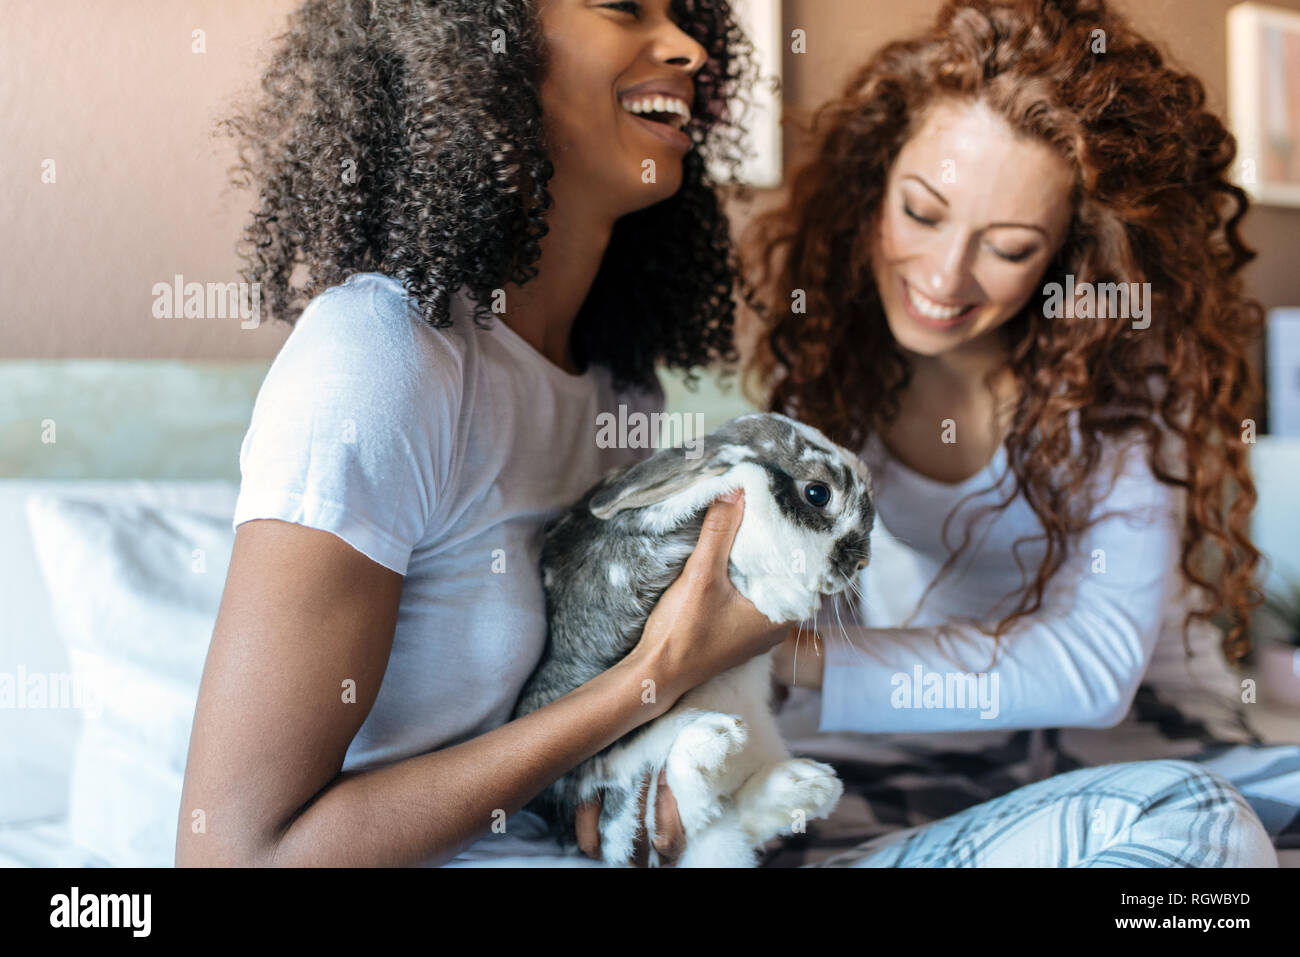 Young women in bed playing with little bunny - Stock Image